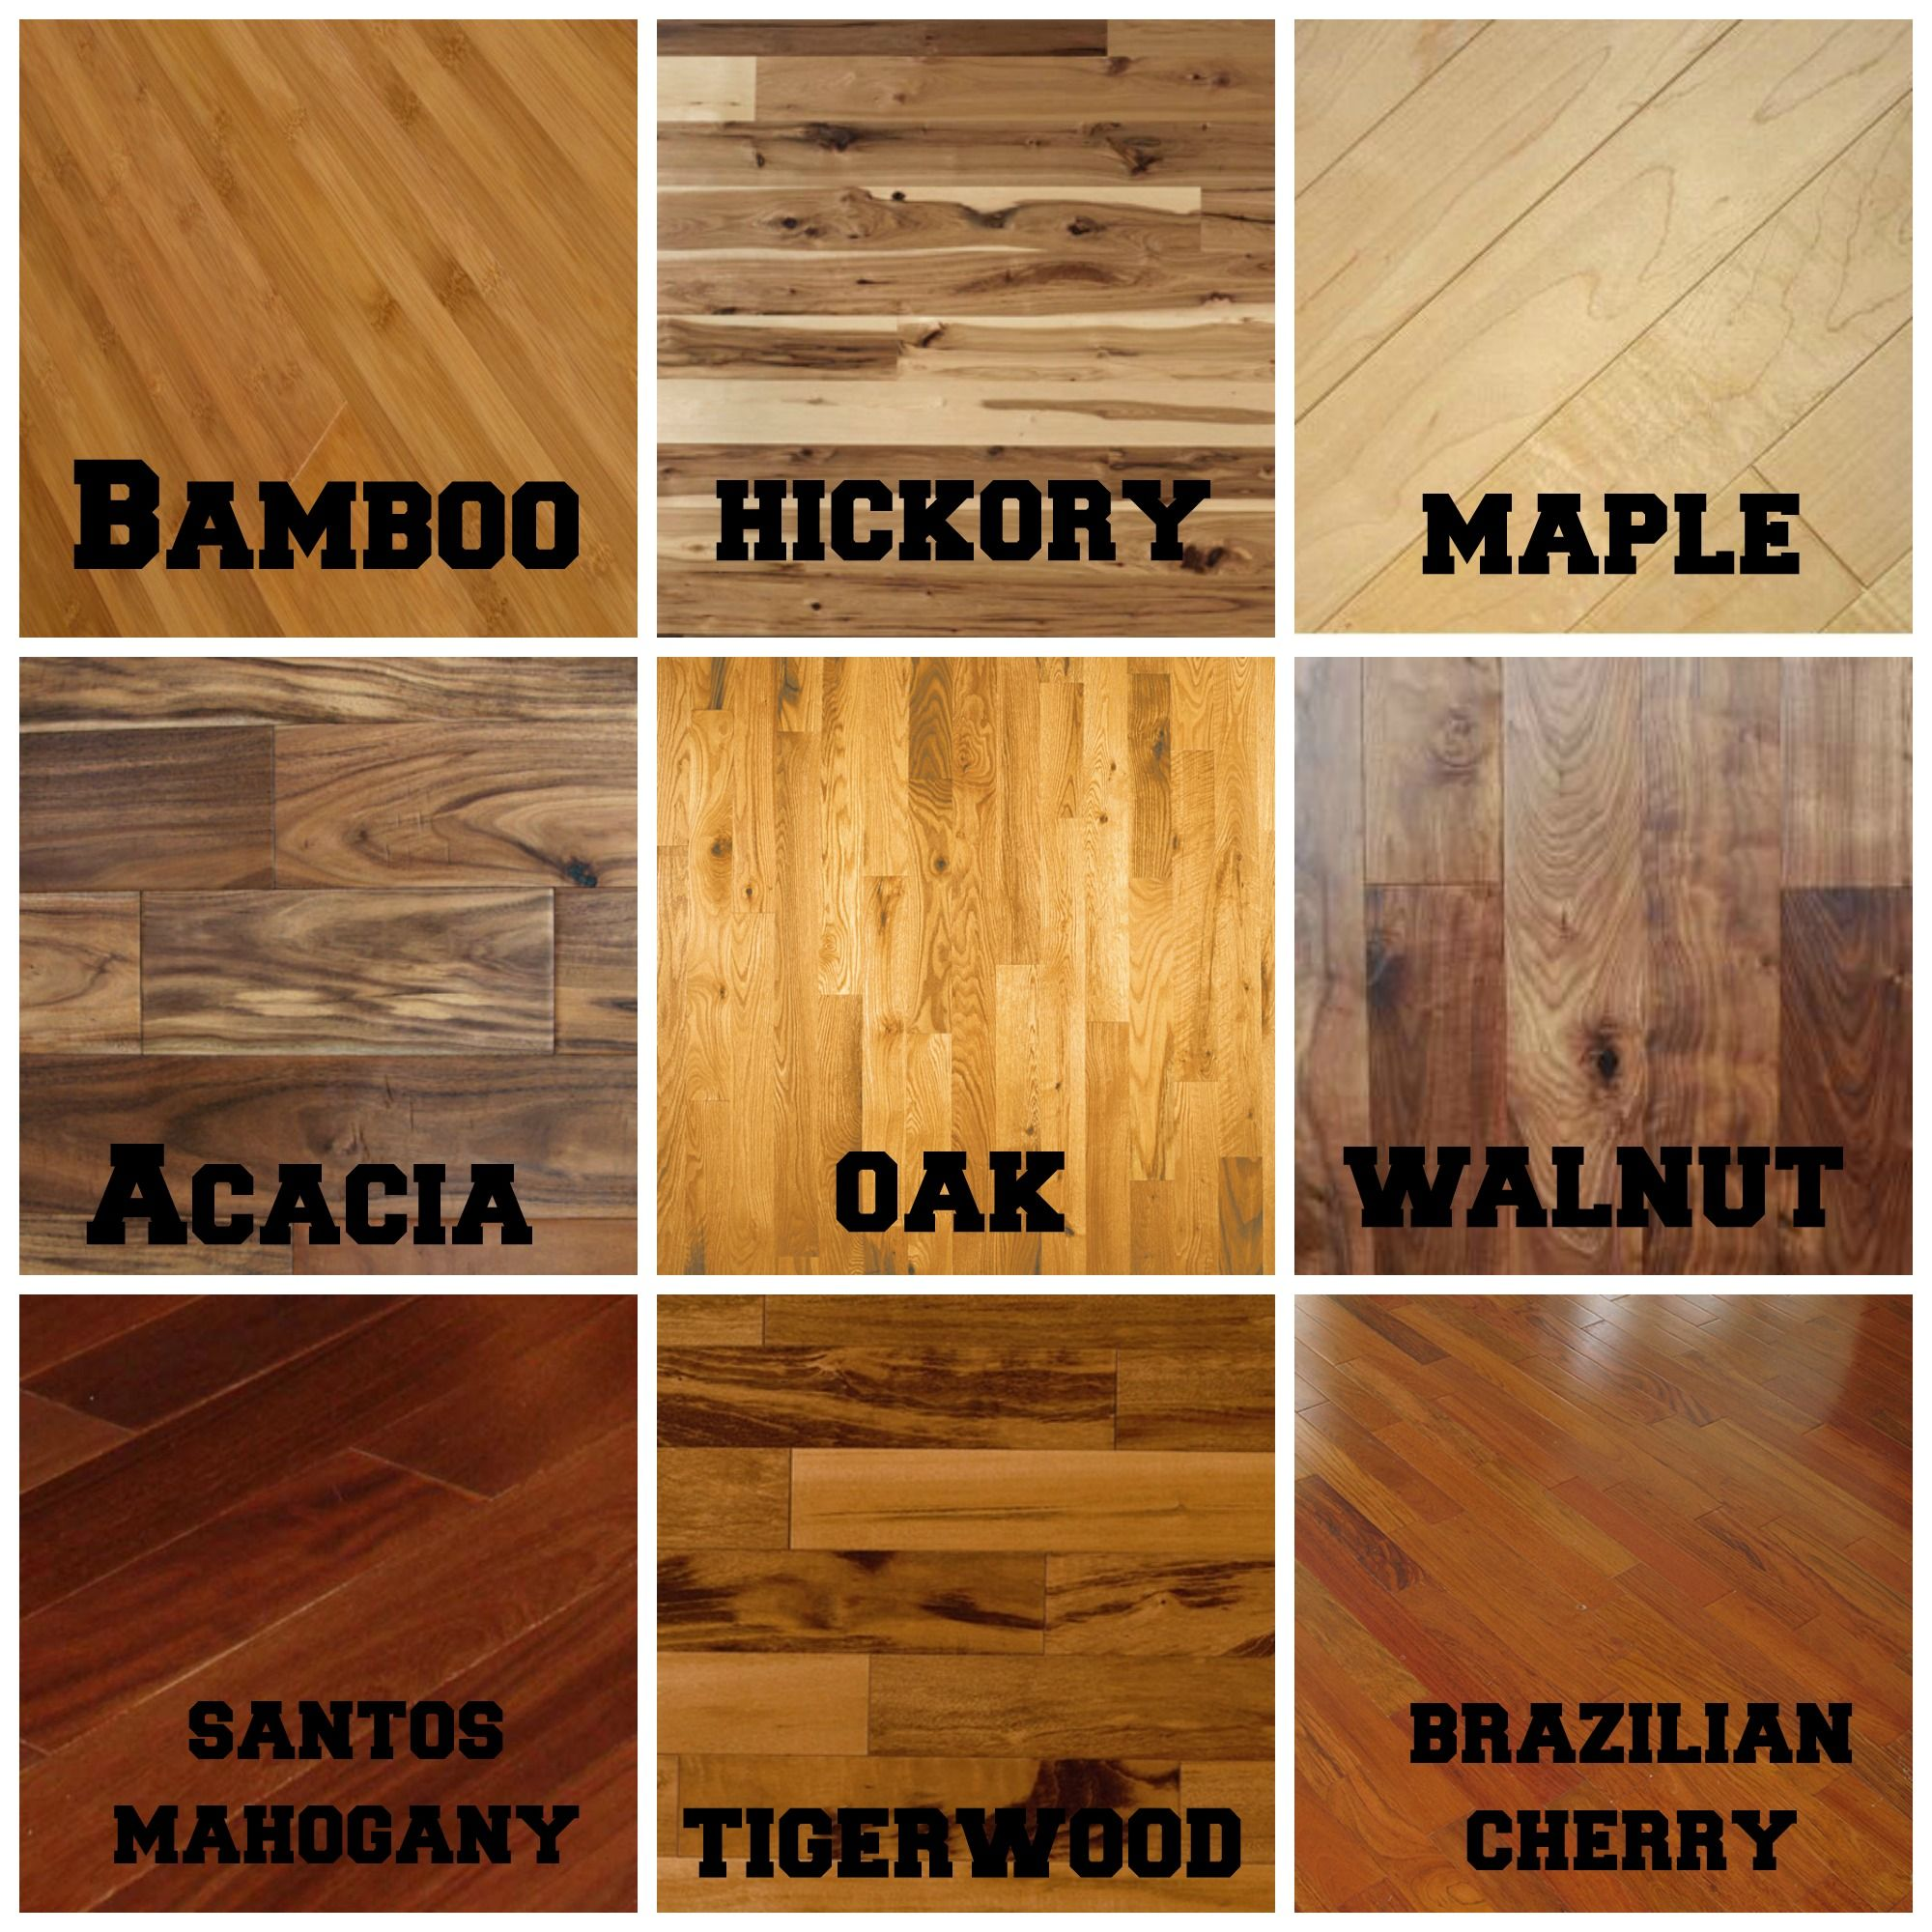 Hardwood flooring types wood design inspiration 23818 for Wood flooring choices